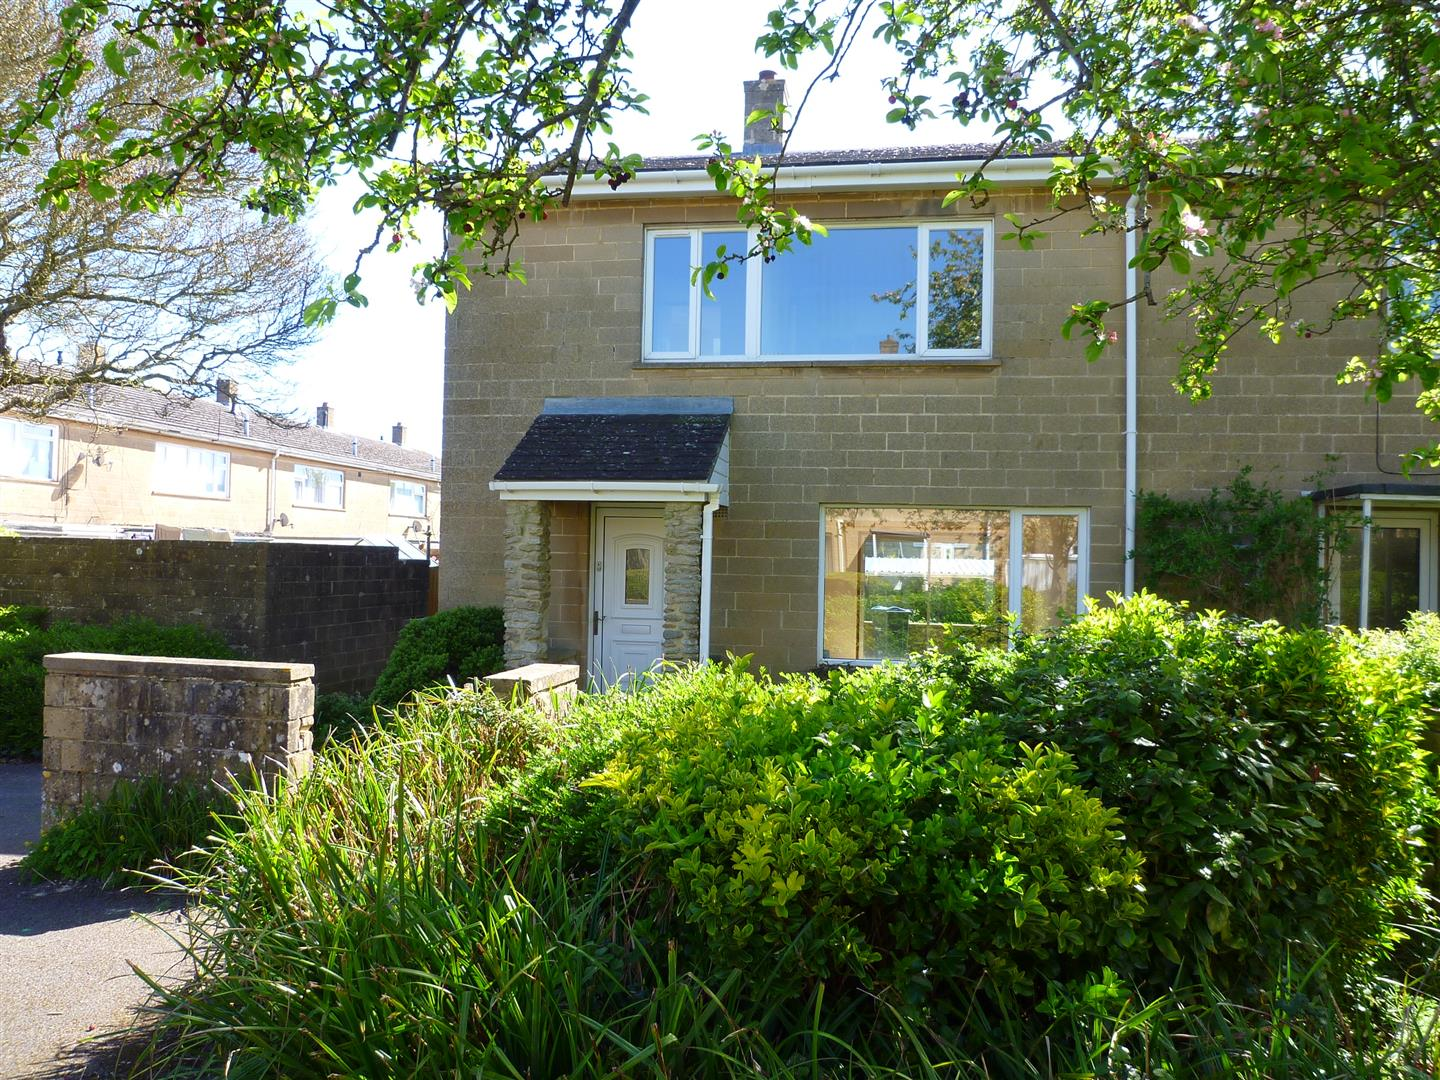 3 Bedrooms End Of Terrace House for rent in Bradford On Avon